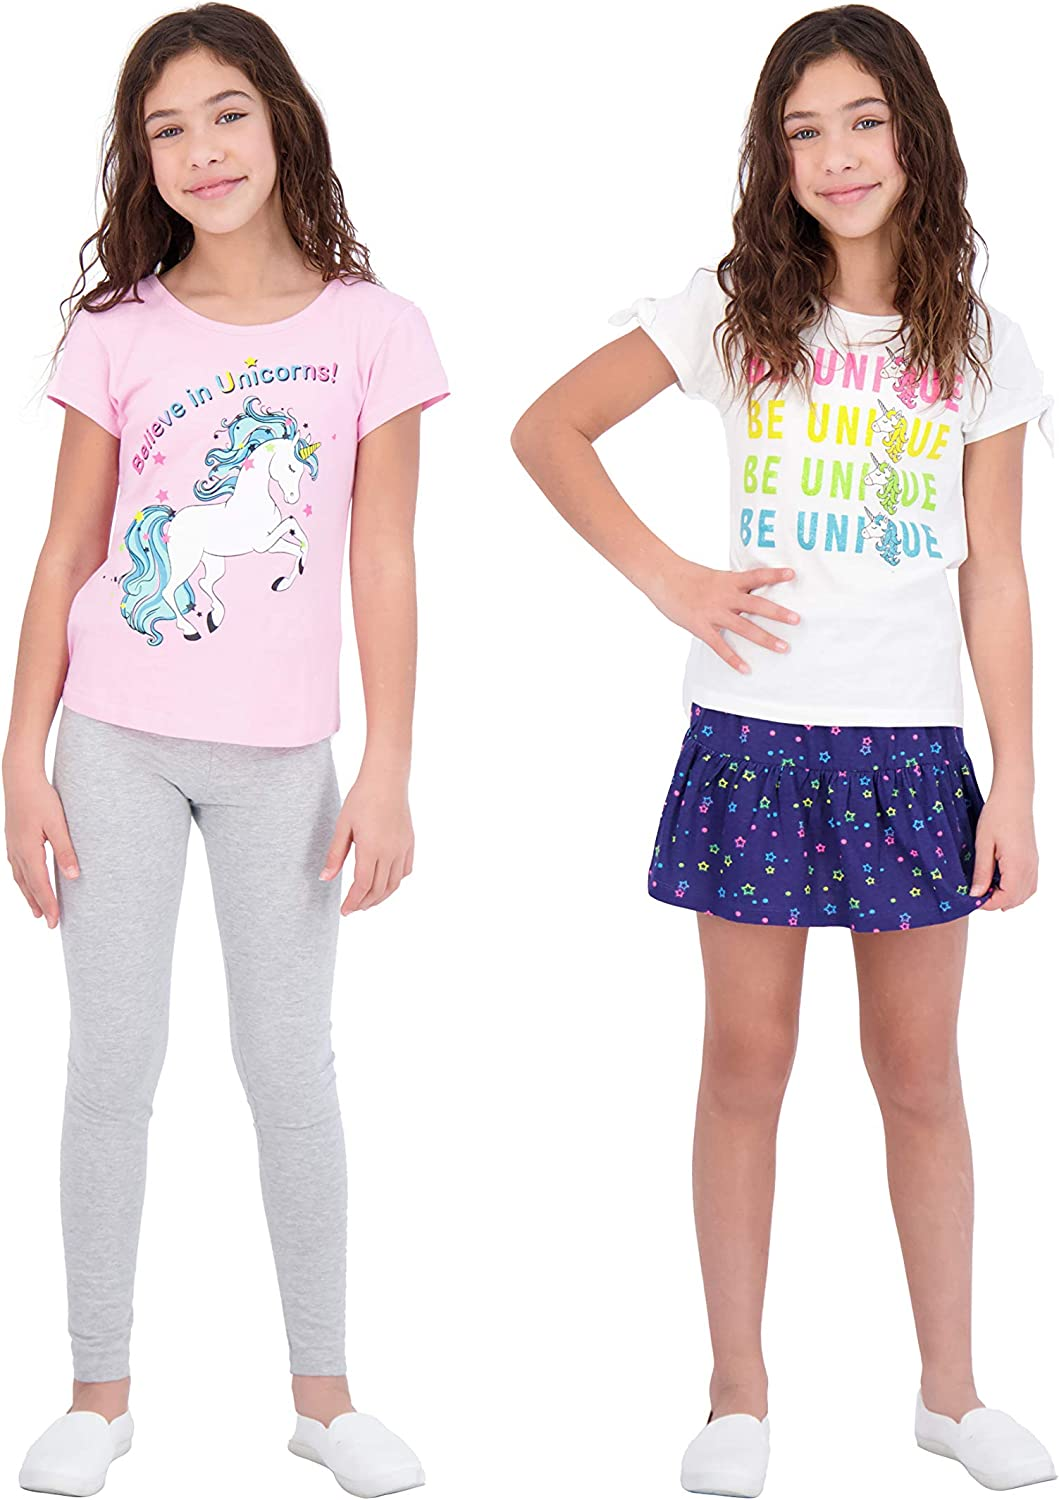 Sweet Butterfly Girls 4 Piece Leggings Skirt and Short Sleeve Fashion Tops Set for Kids Children's Clothes: Clothing, Shoes & Jewelry